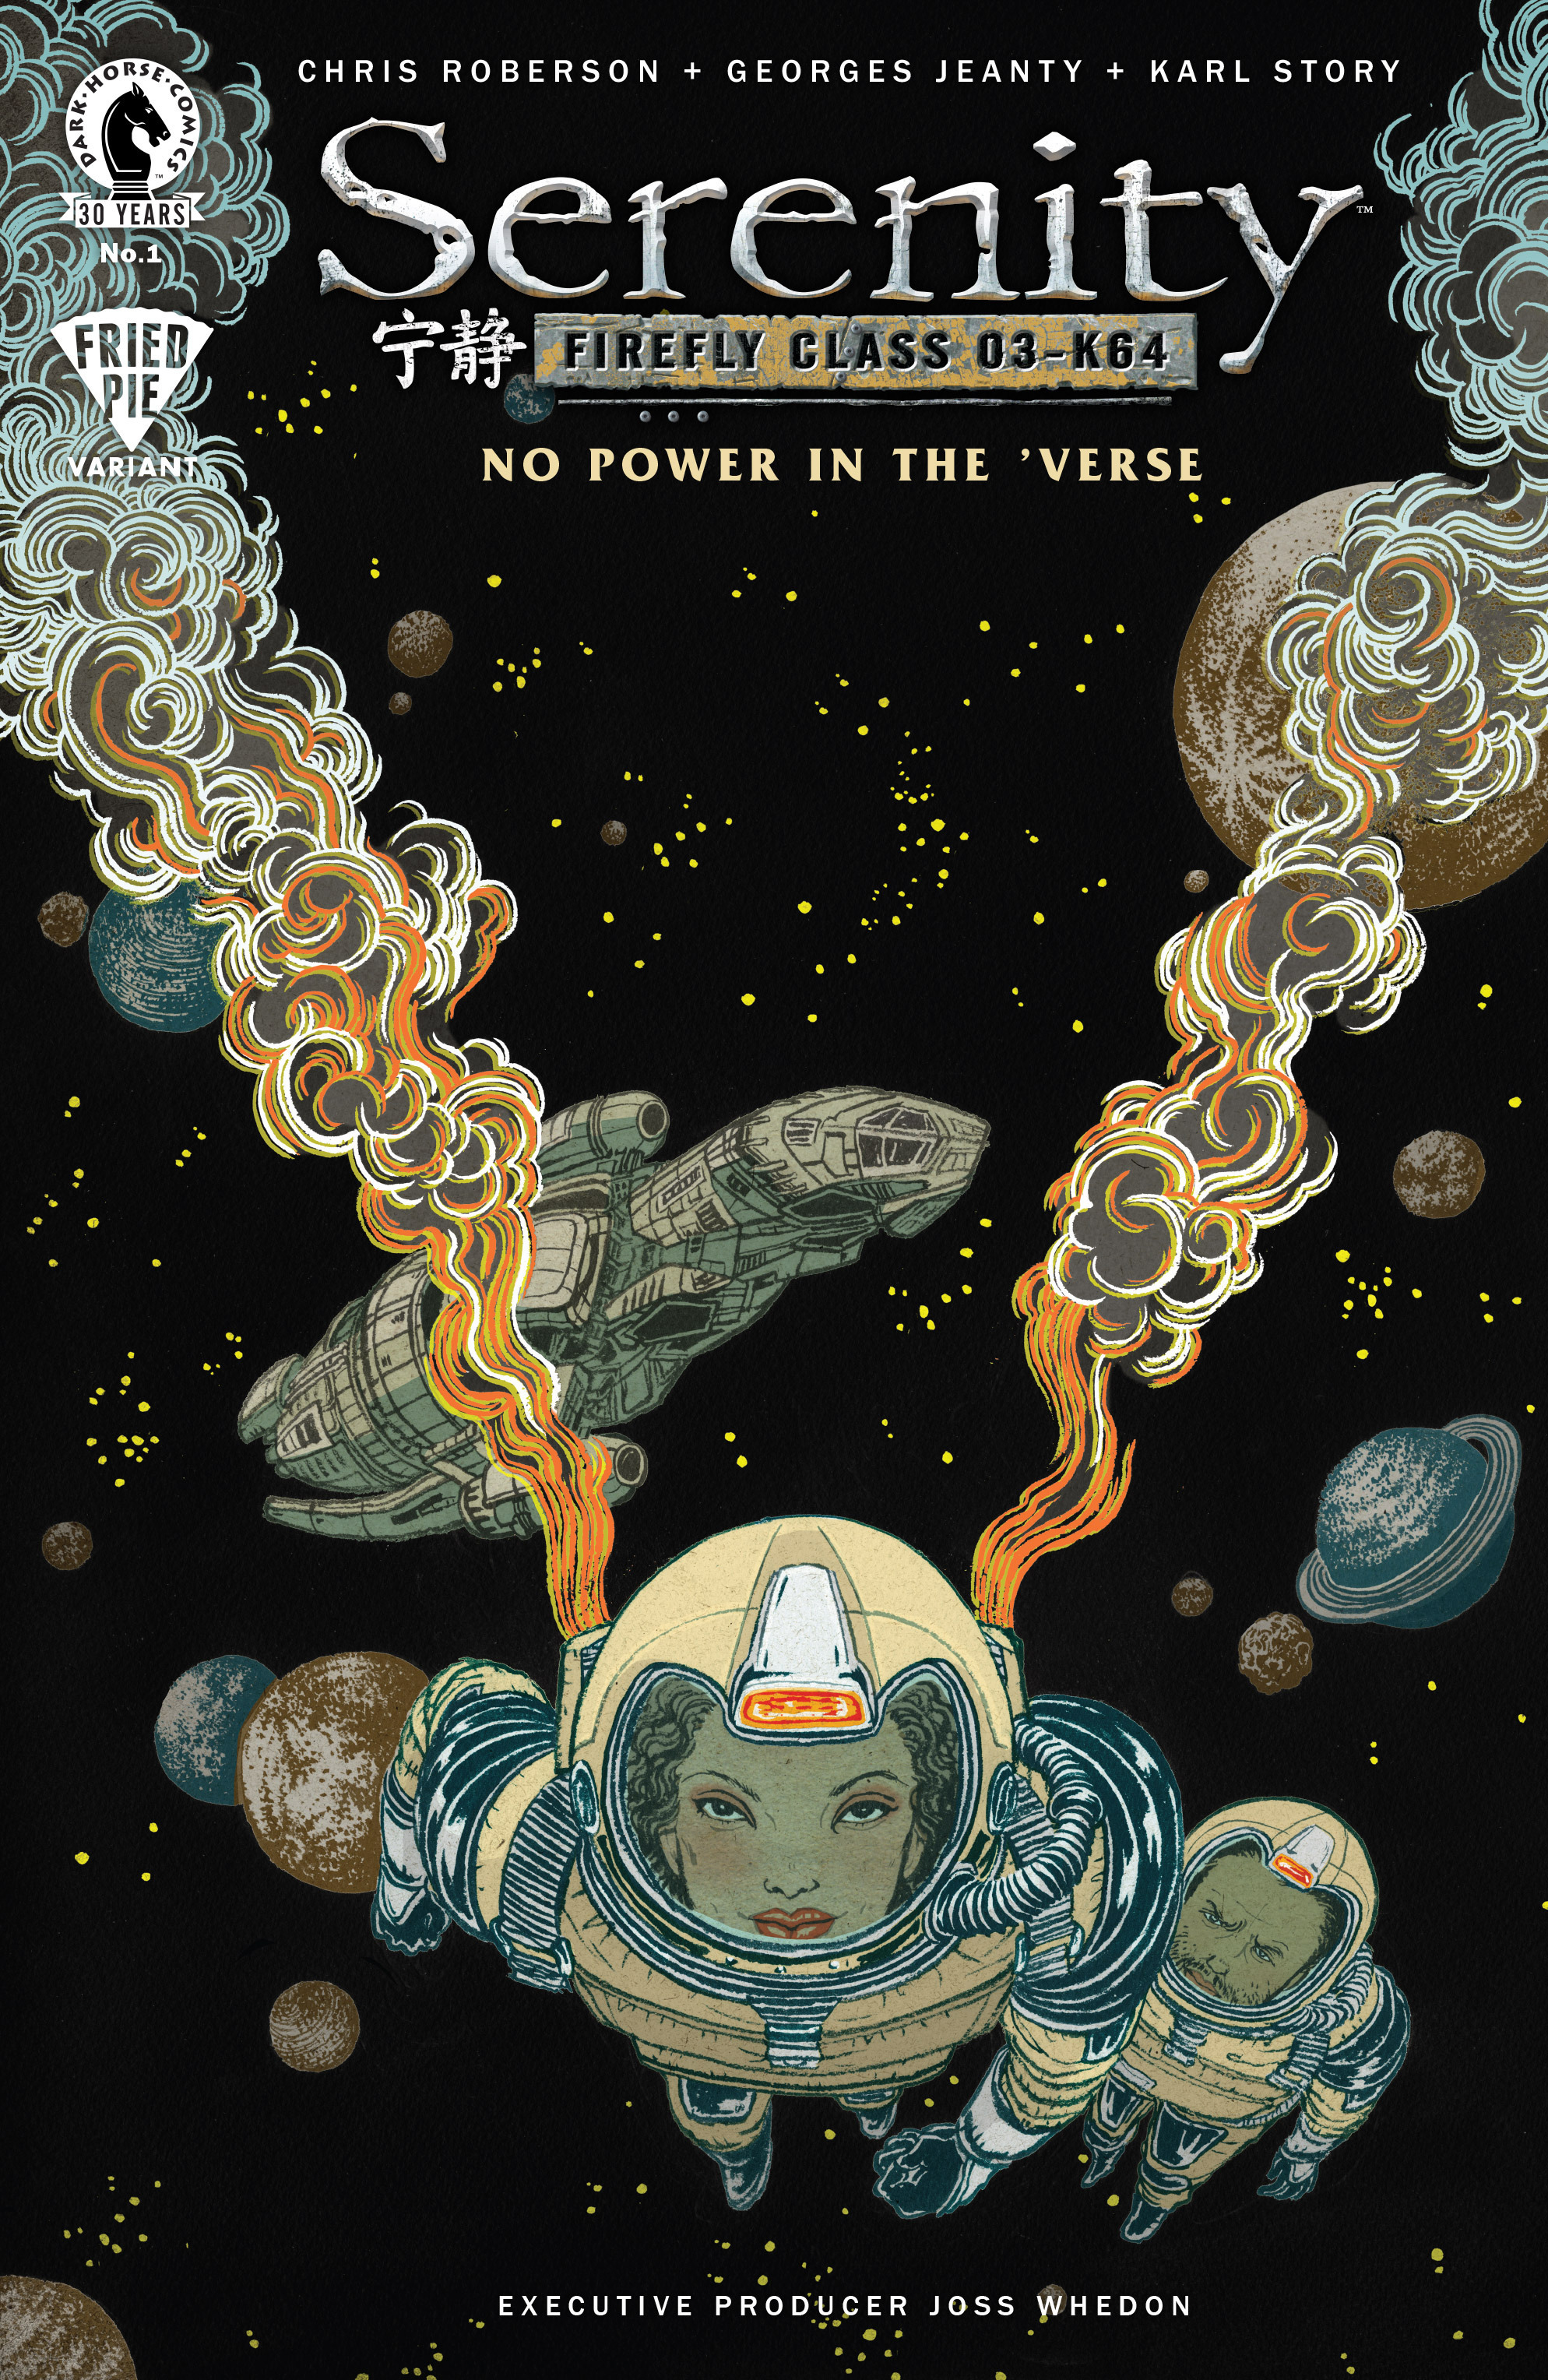 Read online Serenity: Firefly Class 03-K64 – No Power in the 'Verse comic -  Issue #1 - 5